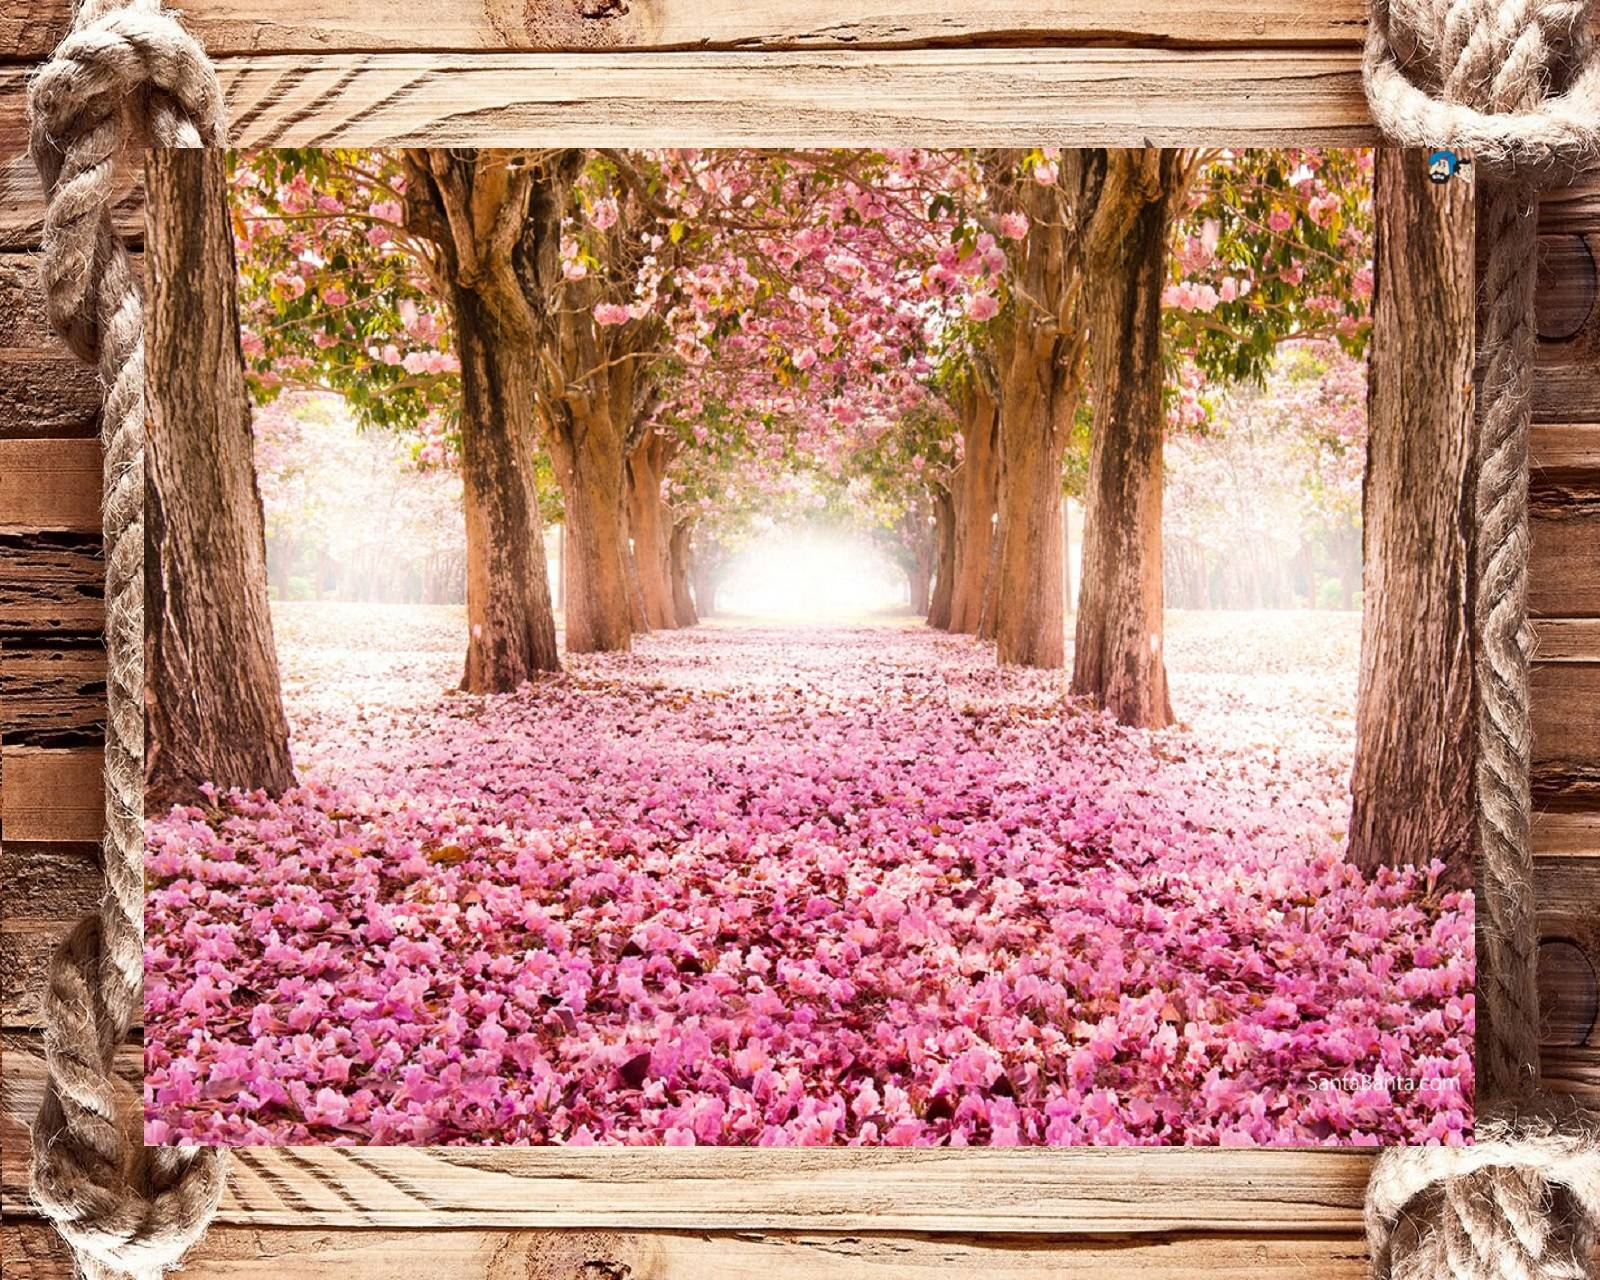 Beauty of blossoms